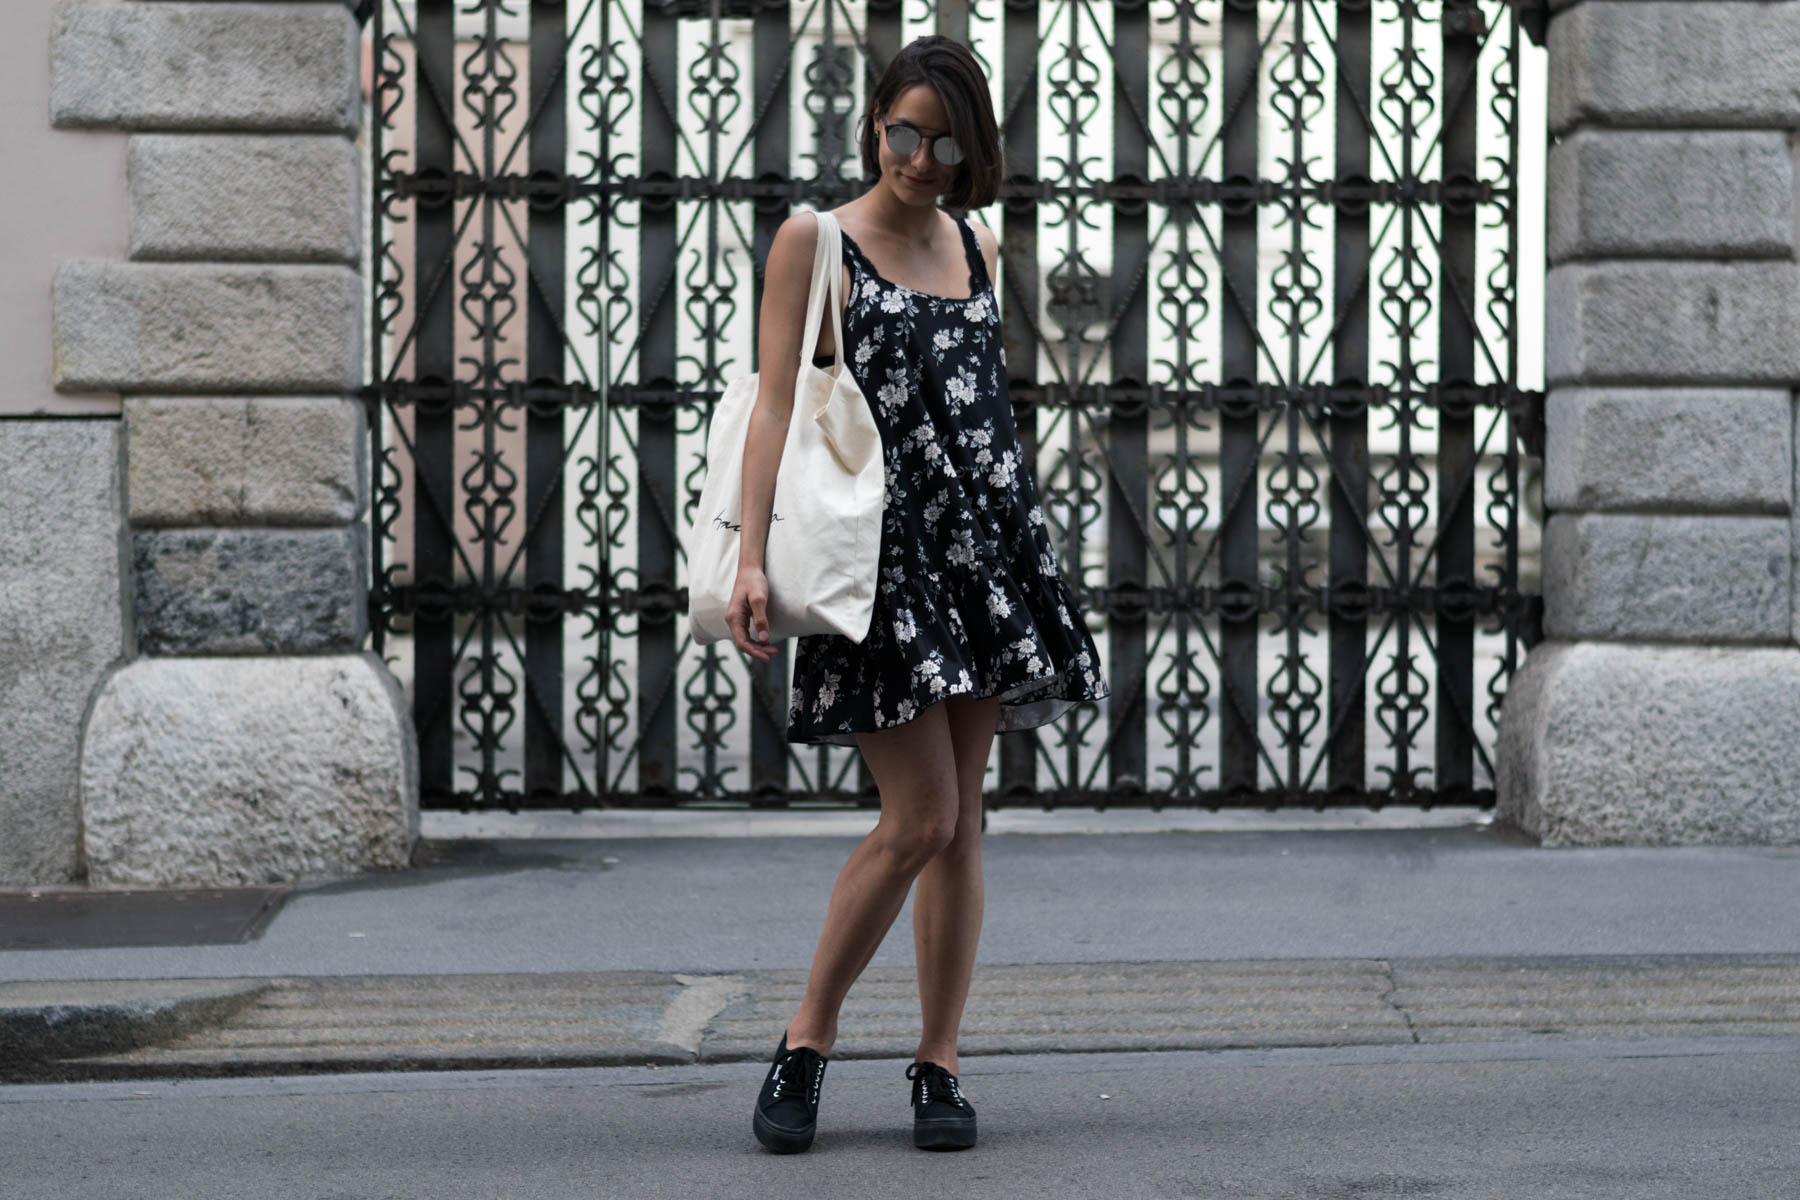 Superga platforms and a floral dress on a hot summer day-15